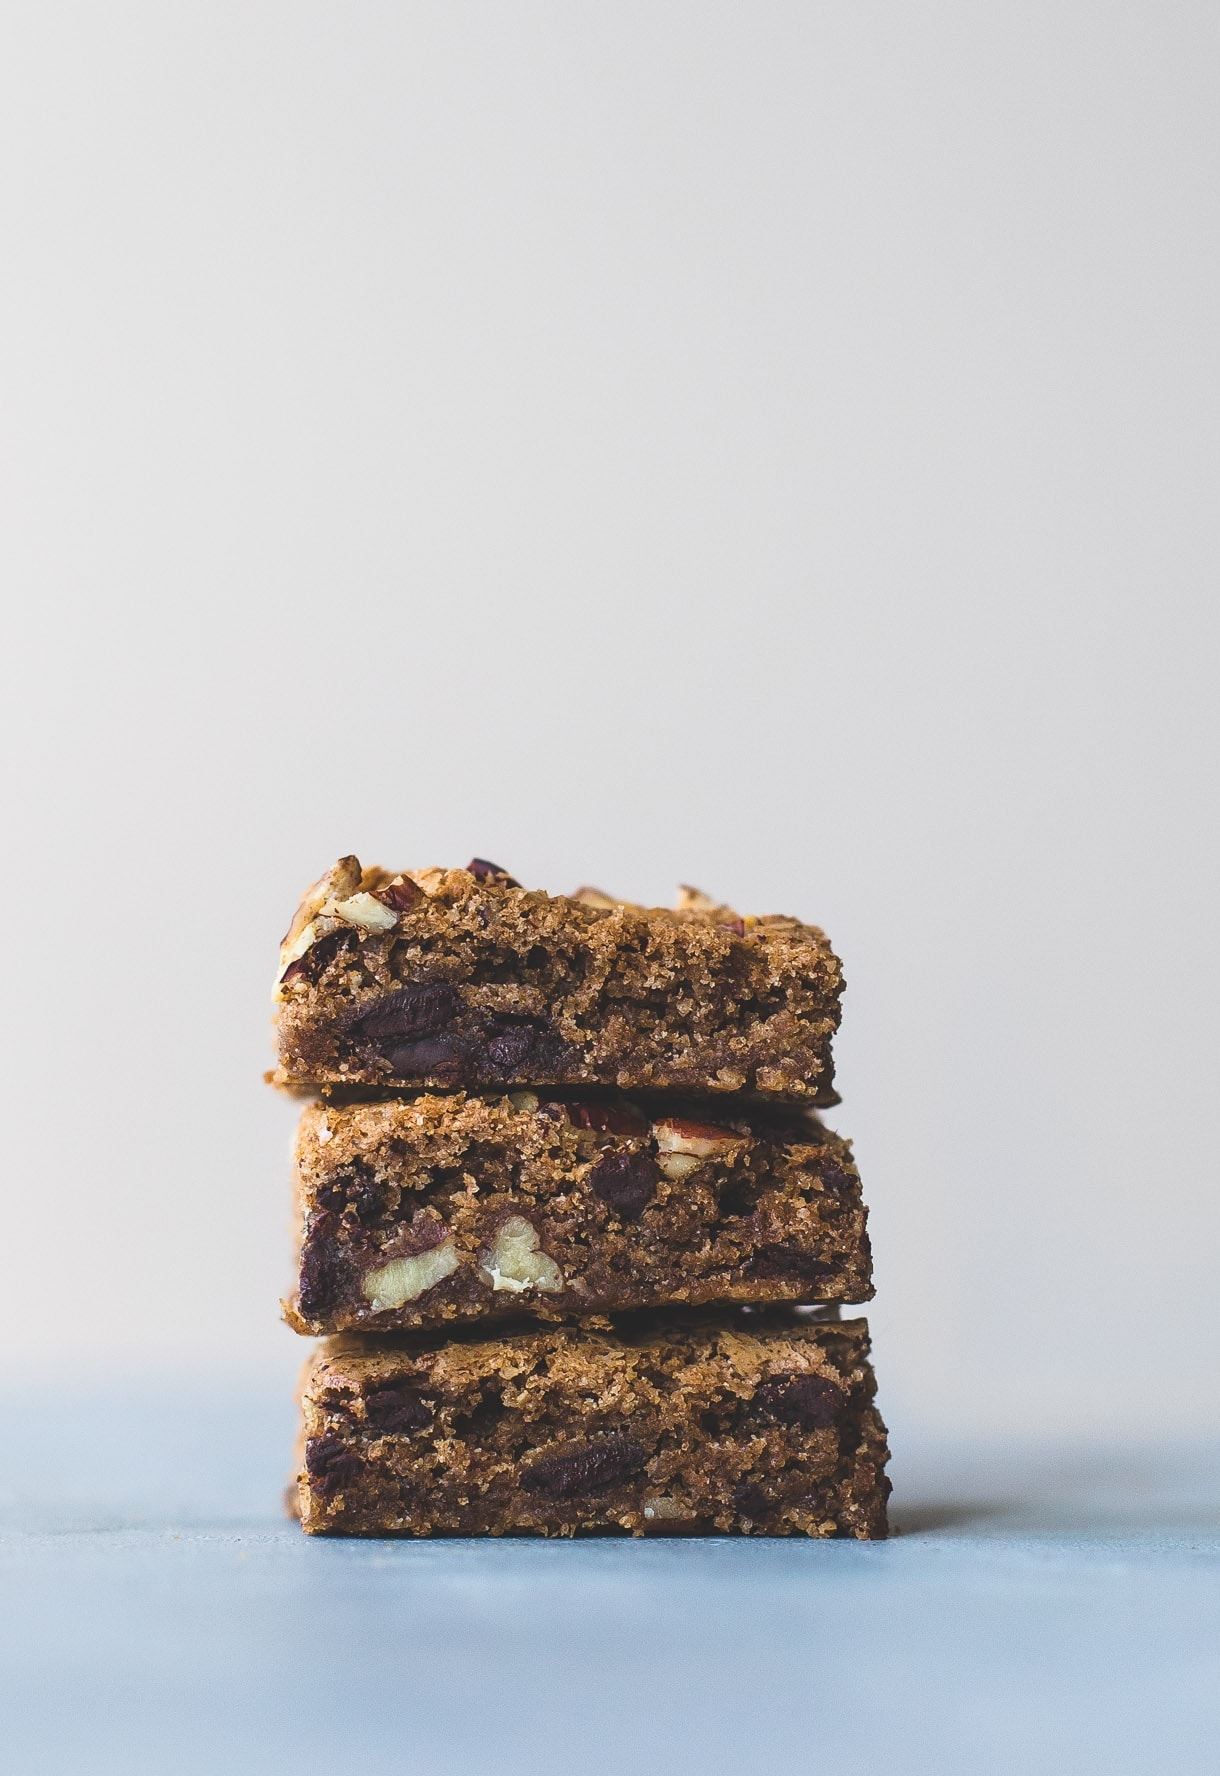 Coffee Chocolate Chunk Blondies -- gluten free, made with teff flour. adapted from Vanilla Bean Baking Book